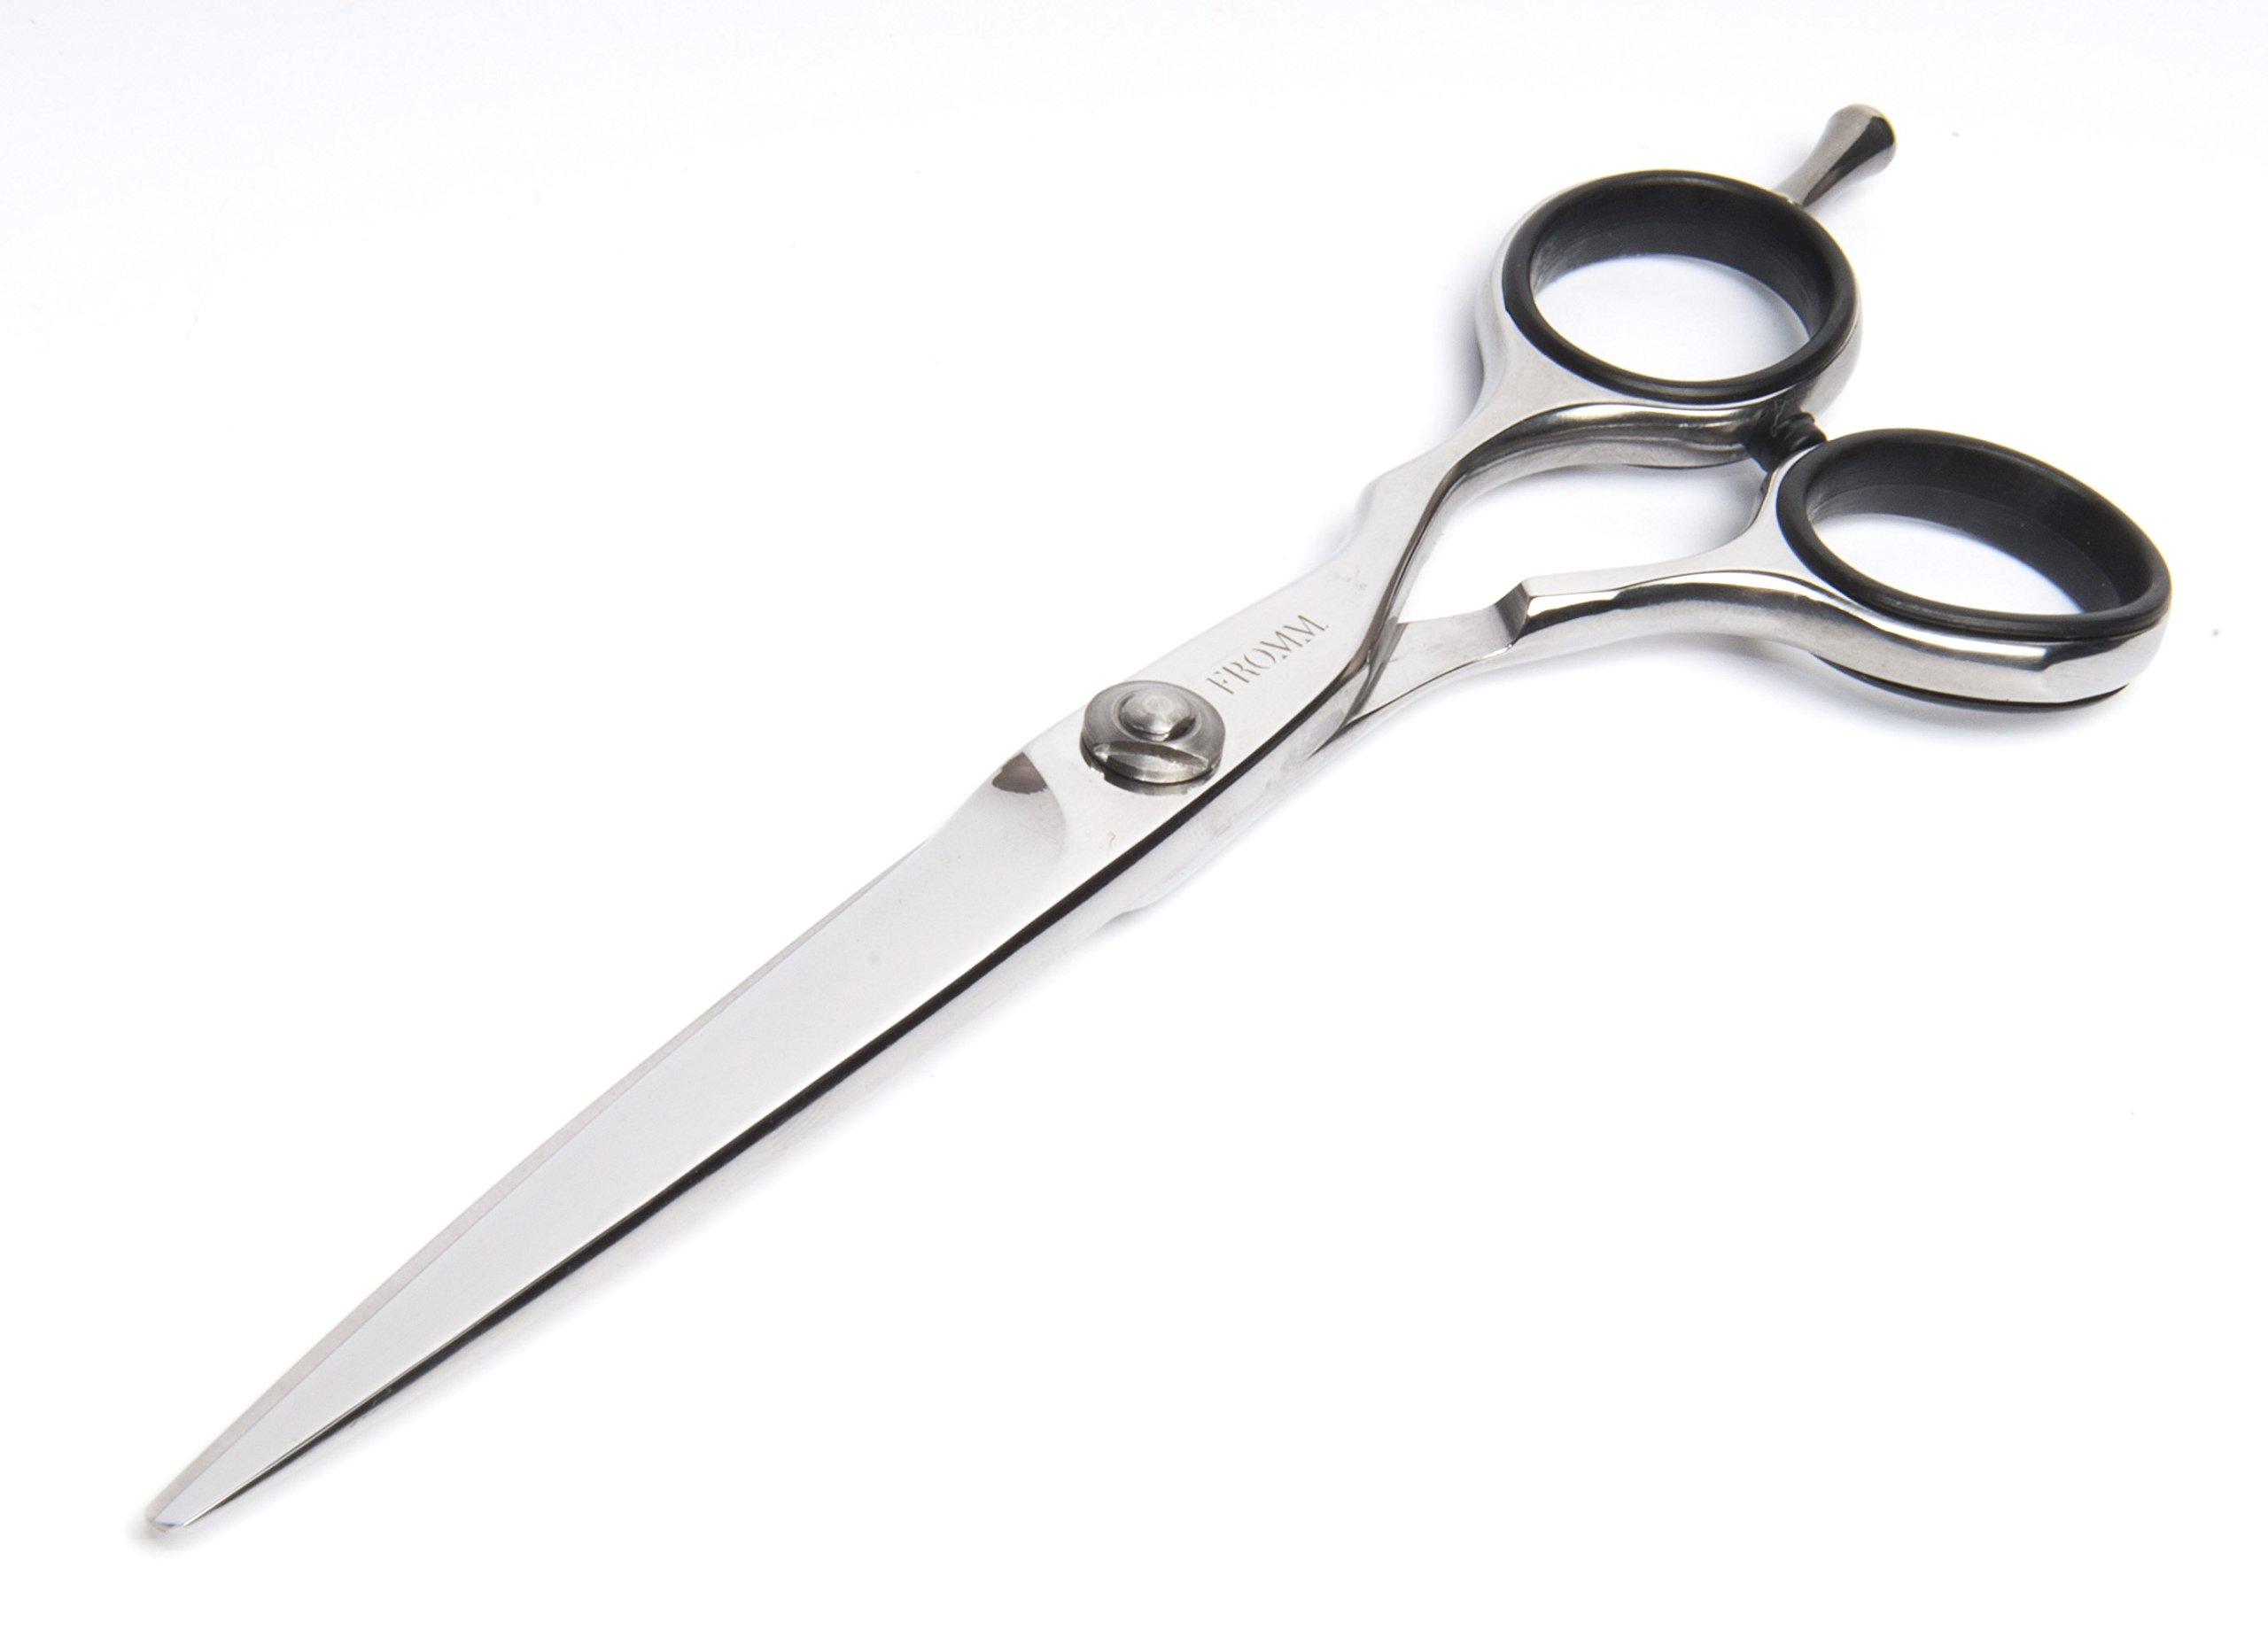 Fromm Tempo 5.75 Inch Shear, FCS007 by Fromm (Image #4)